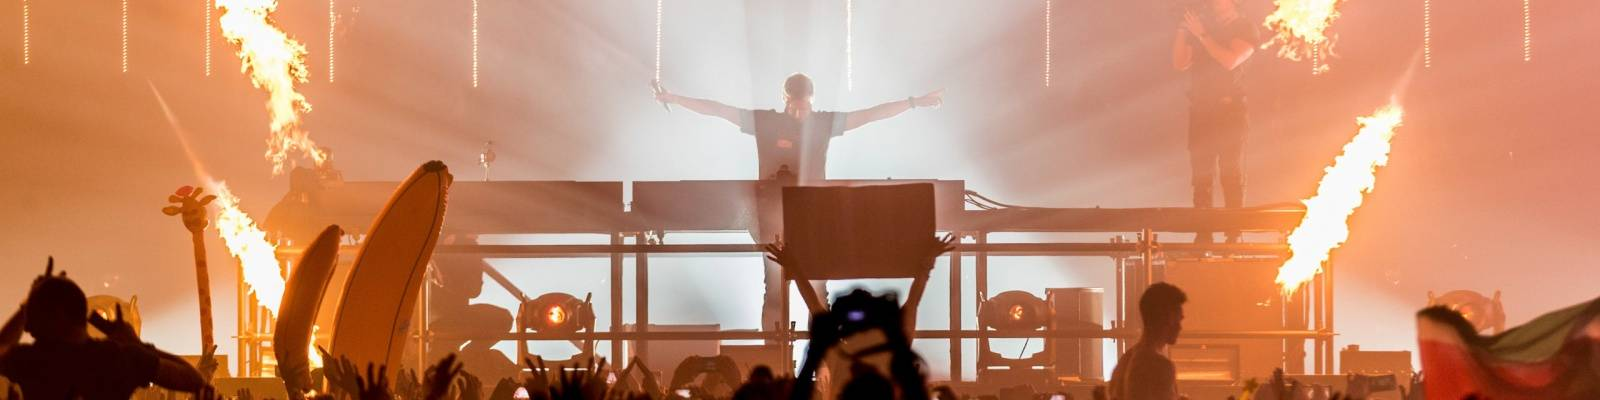 A State Of Trance and Armin van Buuren have been nominated in this year's International Dance Music Awards!